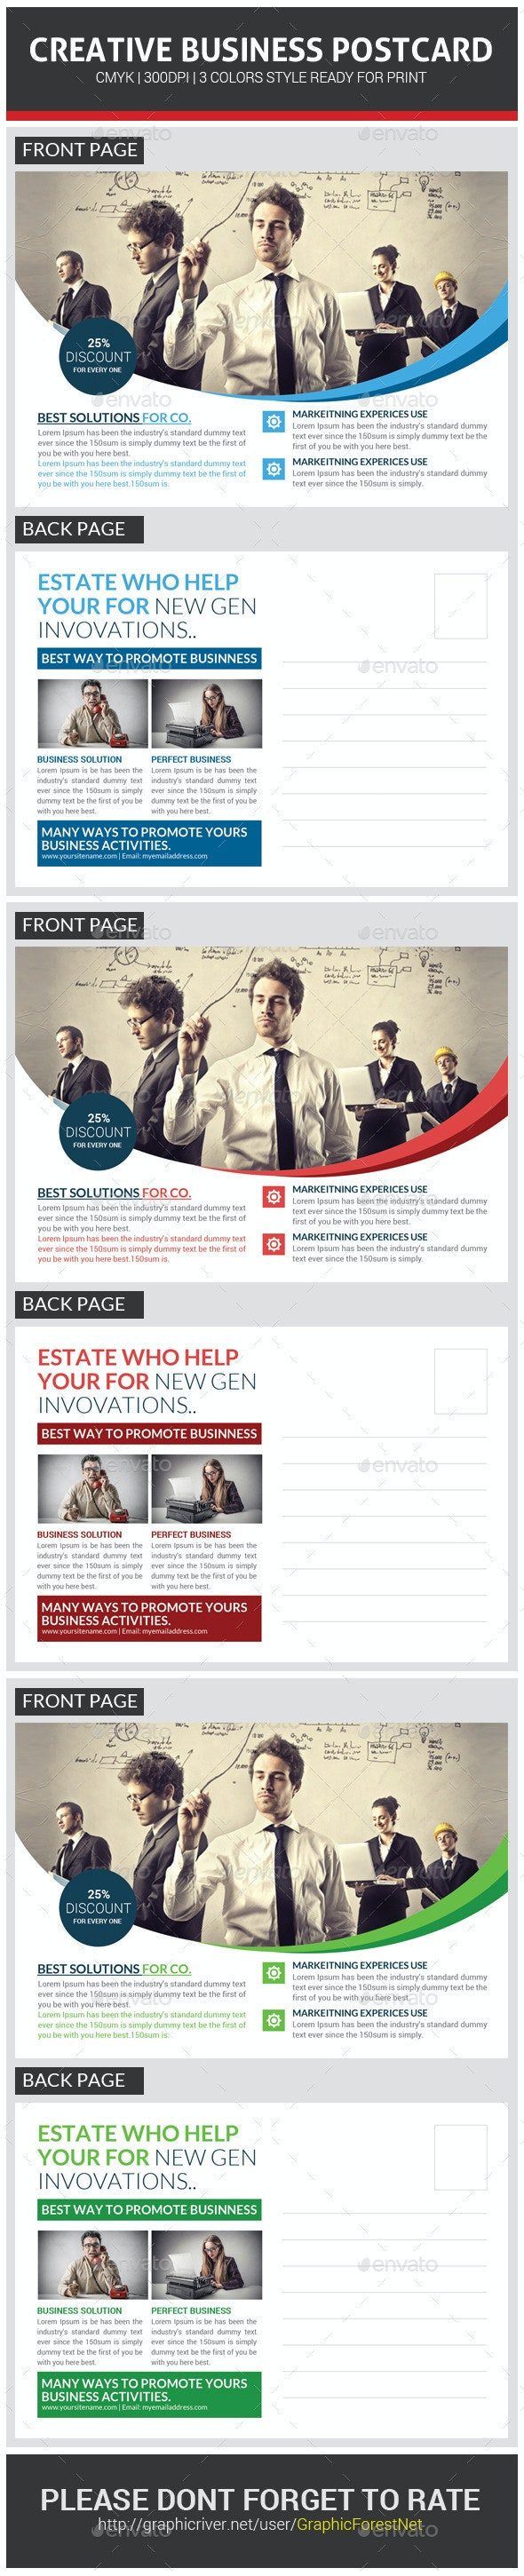 Corporate Business Postcard Template - Cards & Invites Print Templates